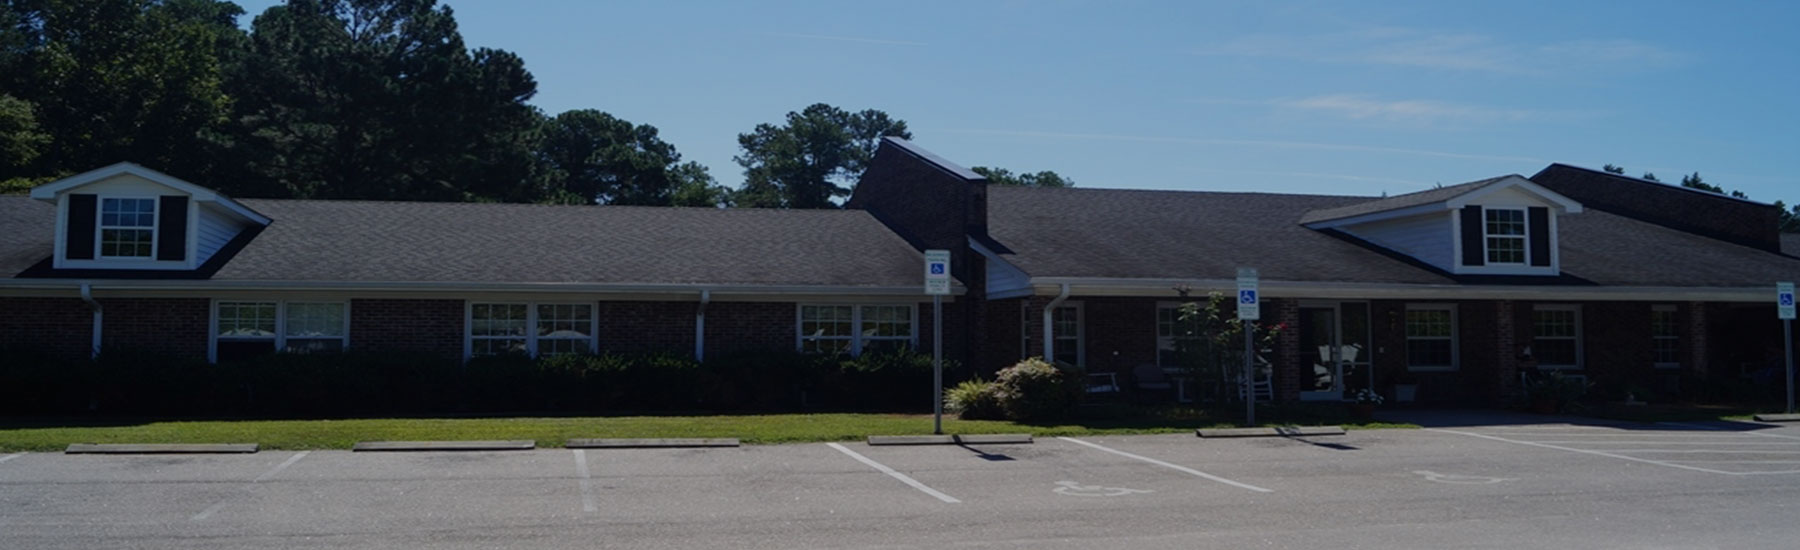 Assisted Living Cary North Carolina